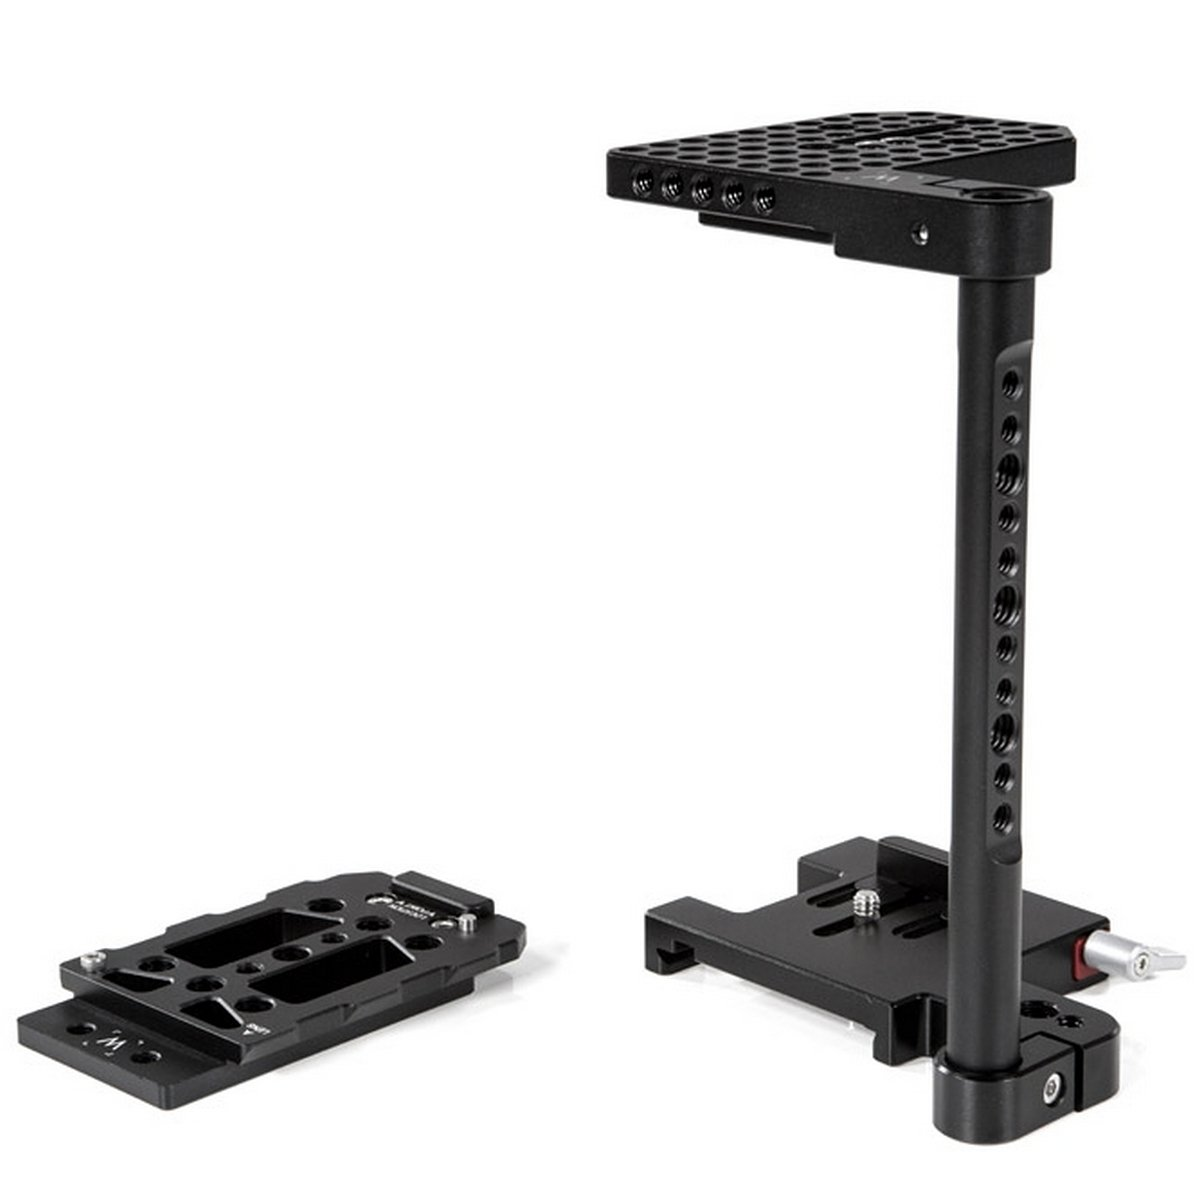 Wooden Camera 162900 | Height Adjustable Quick Cage for Large DSLR Cameras by Wooden Camera